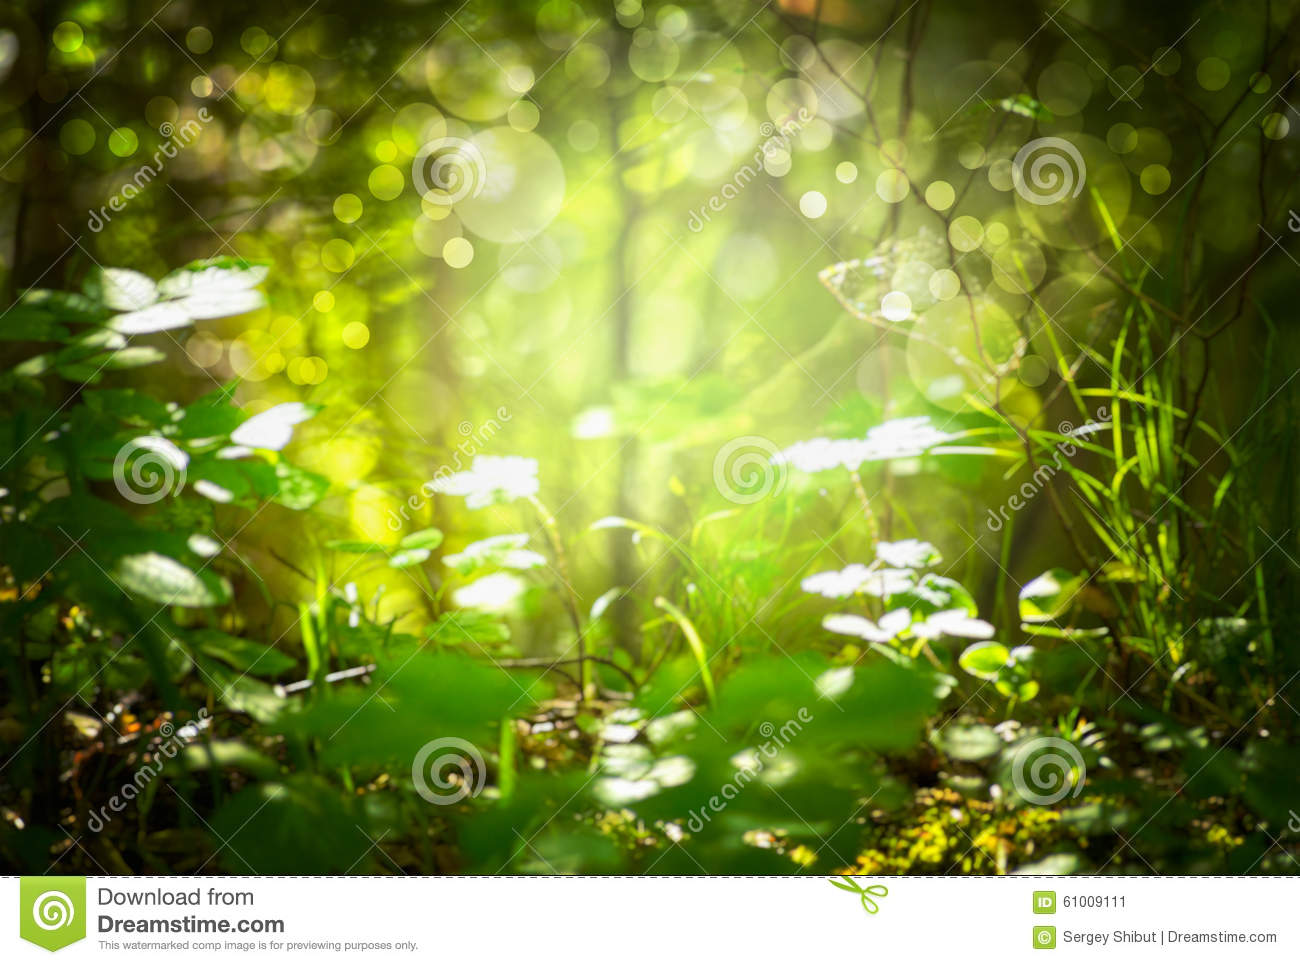 De focus blurred forest background grass and leaves for Silverleaf com